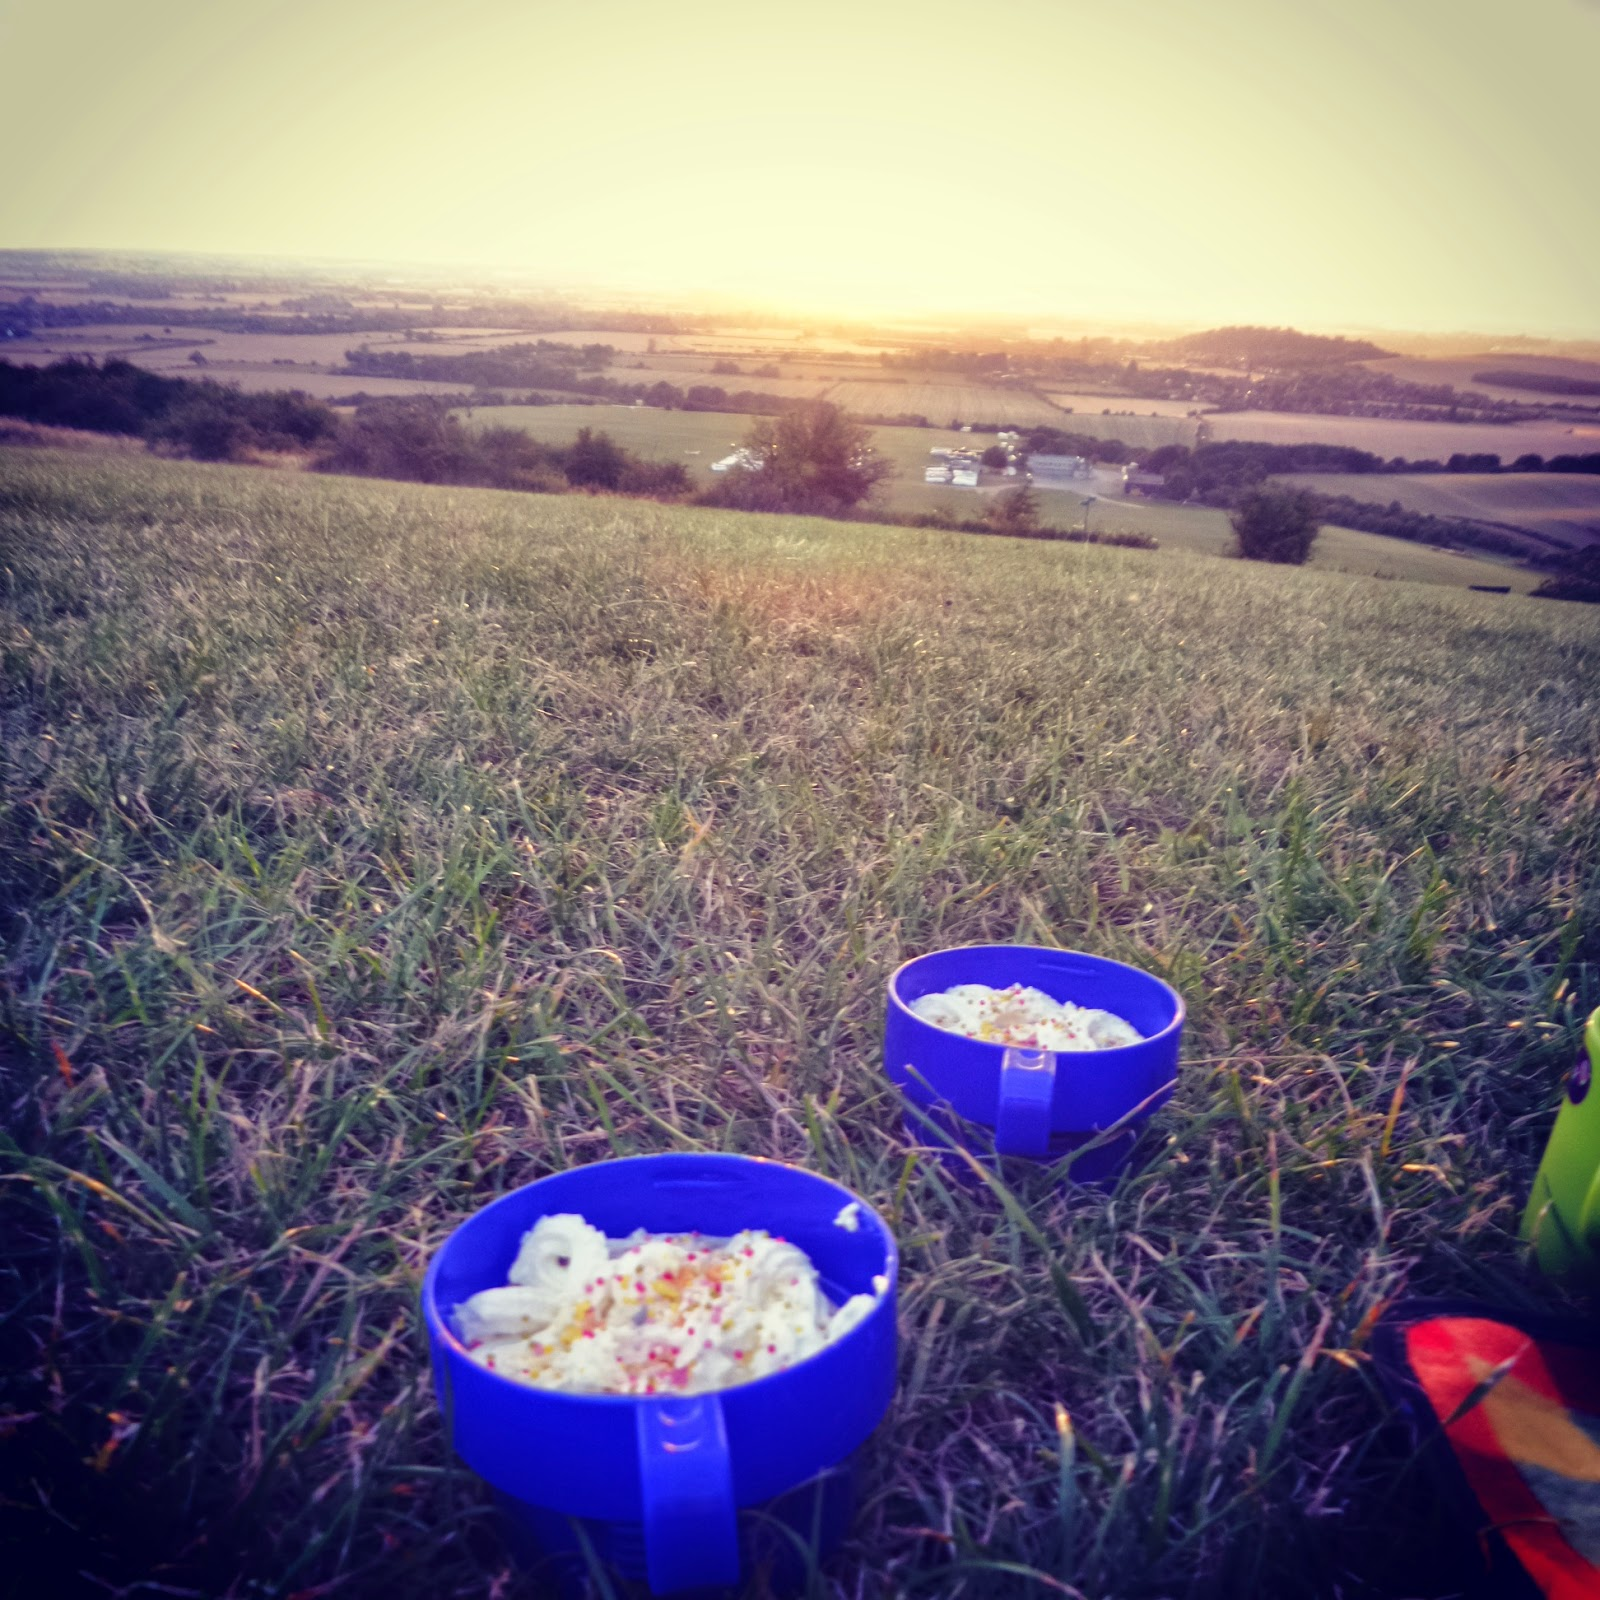 Hot Chocolate At Sunset on Dunstable Downs